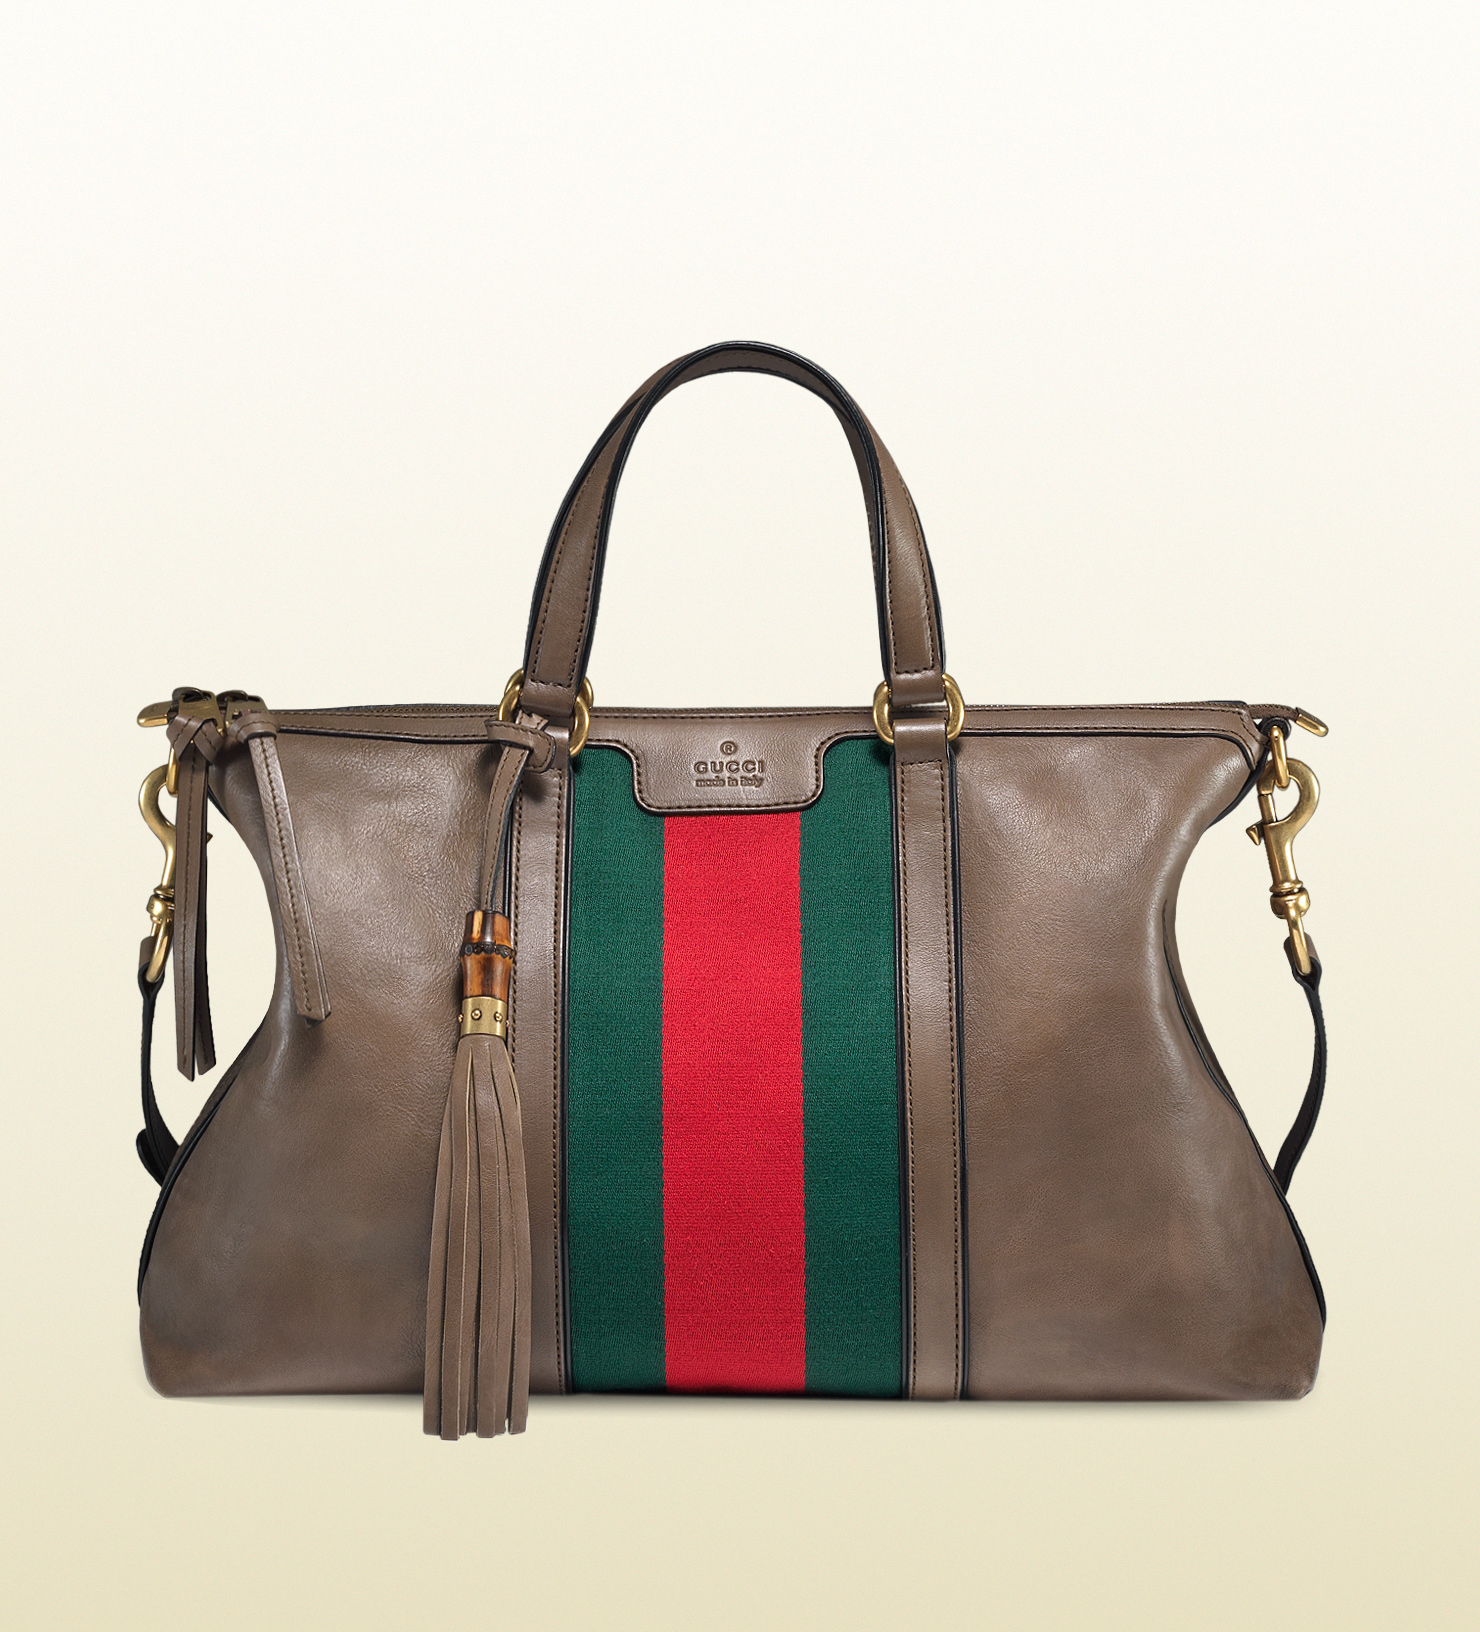 d78c22ba058983 Gucci Rania Leather Top Handle Bag in Brown - Lyst